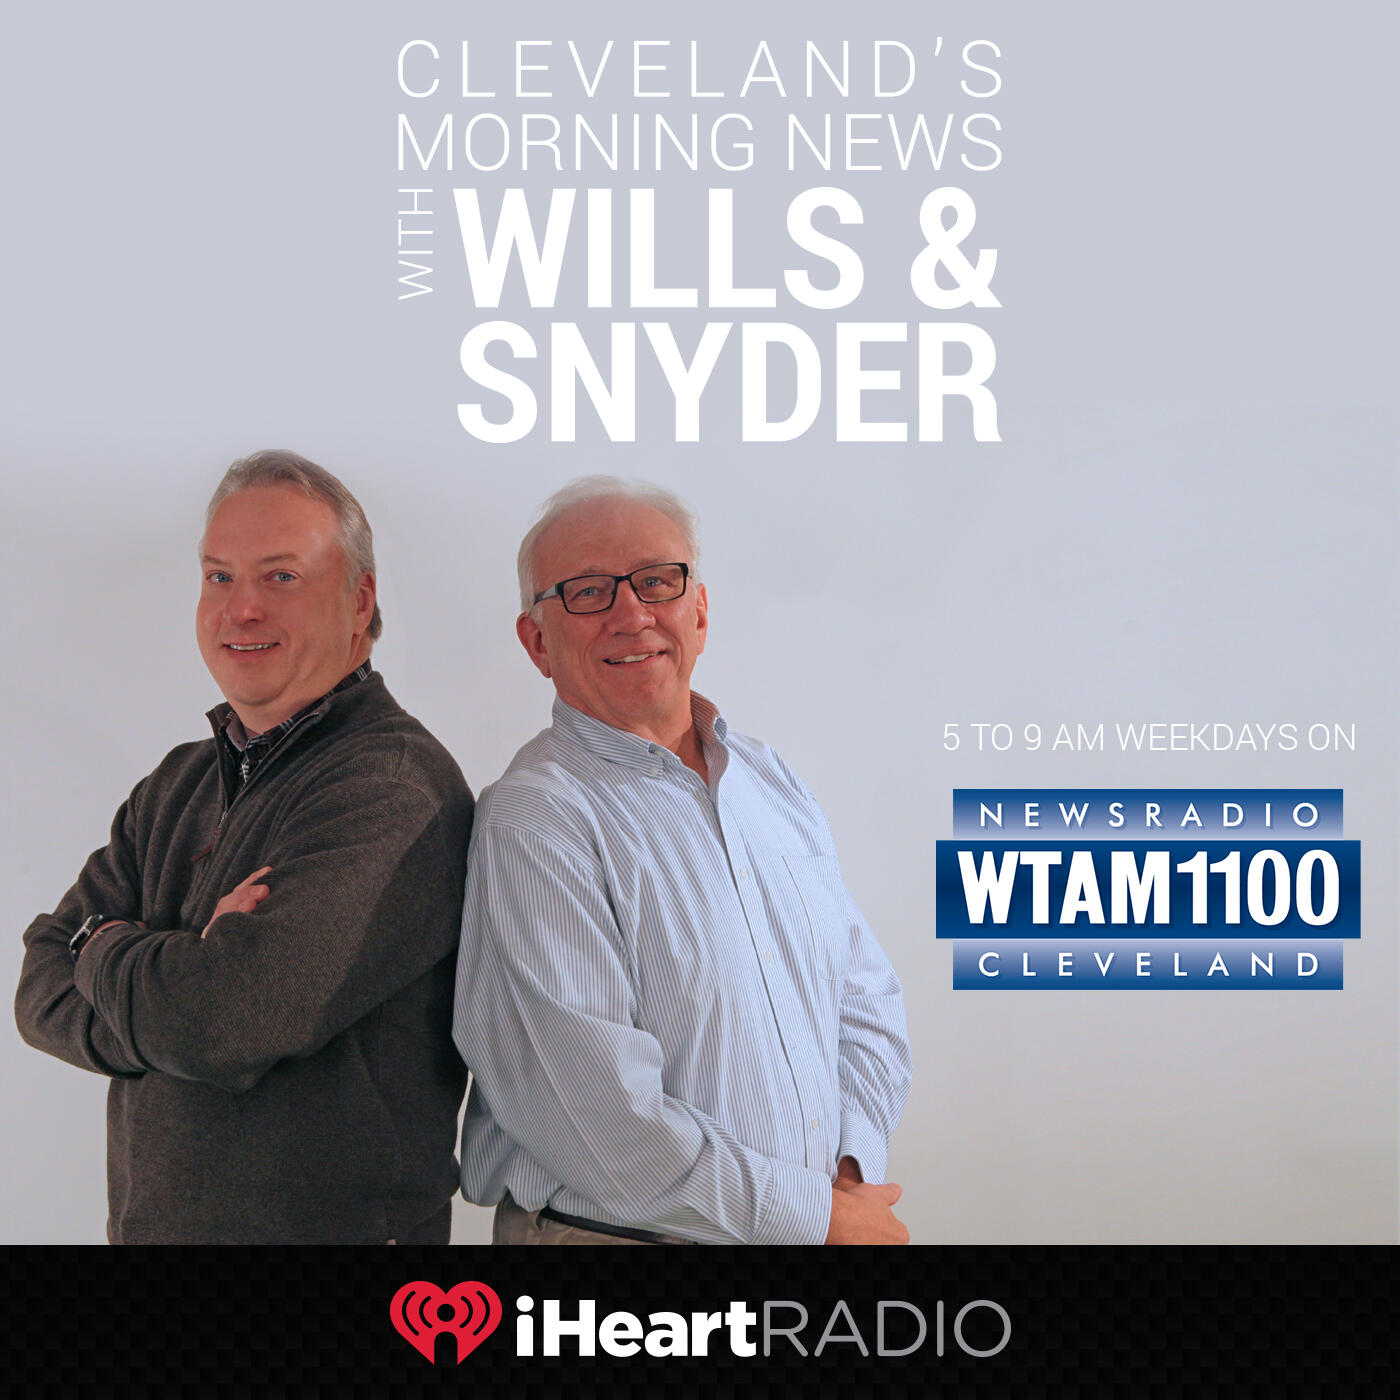 Listen to the Cleveland's Morning News with Wills and Snyder Episode - Wills & Snyder:  Browns On BYE Week - Dave Wohlabaugh Talked Browns - Cavs 1st Game Next Wednesday - Cleveland-Beer-Food News From Marc Bona - Faith Furry Friends - Labor-MGR Relations From Manhattan Inst Dan Disalvo - Entertainment News on iHeartRadio | iHeartRadio